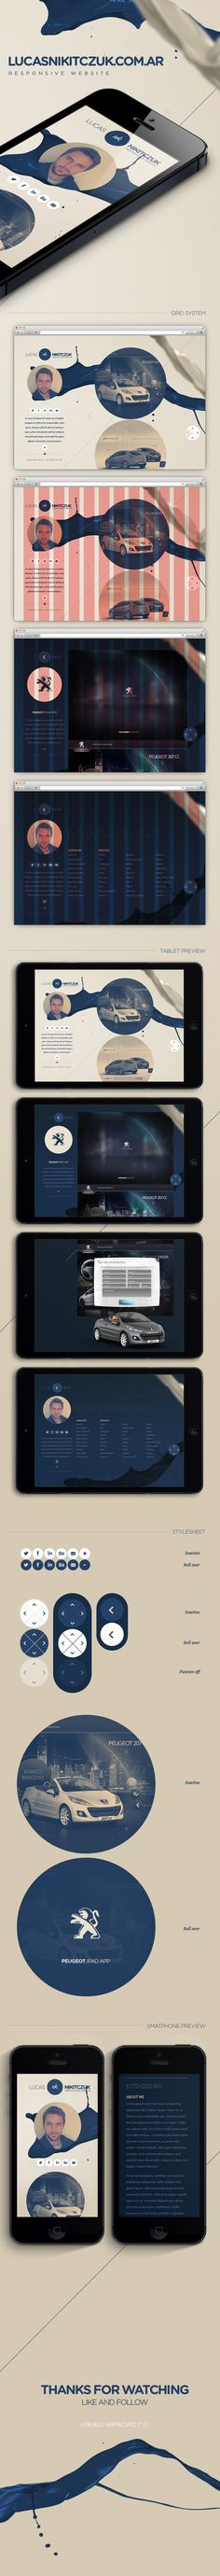 Lucas Nikitczuk | Responsive Website by Lucas Nikitczuk, via Behance